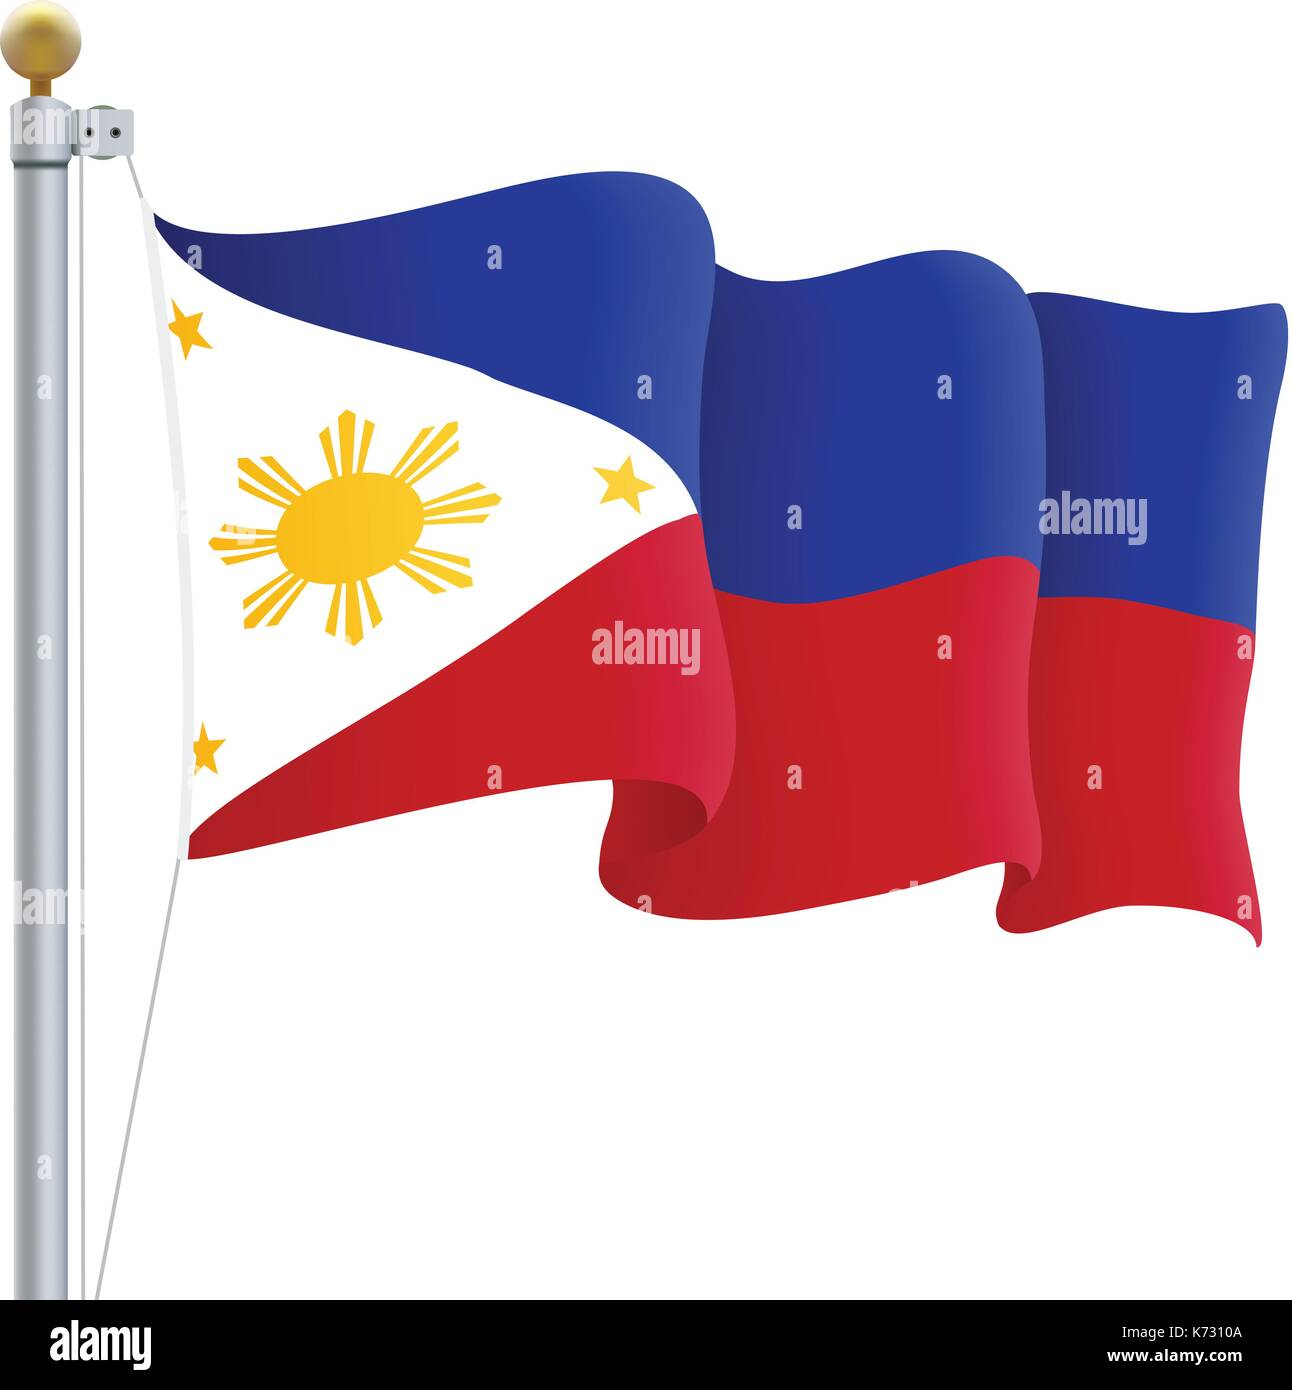 philippines flag stock vector images - alamy